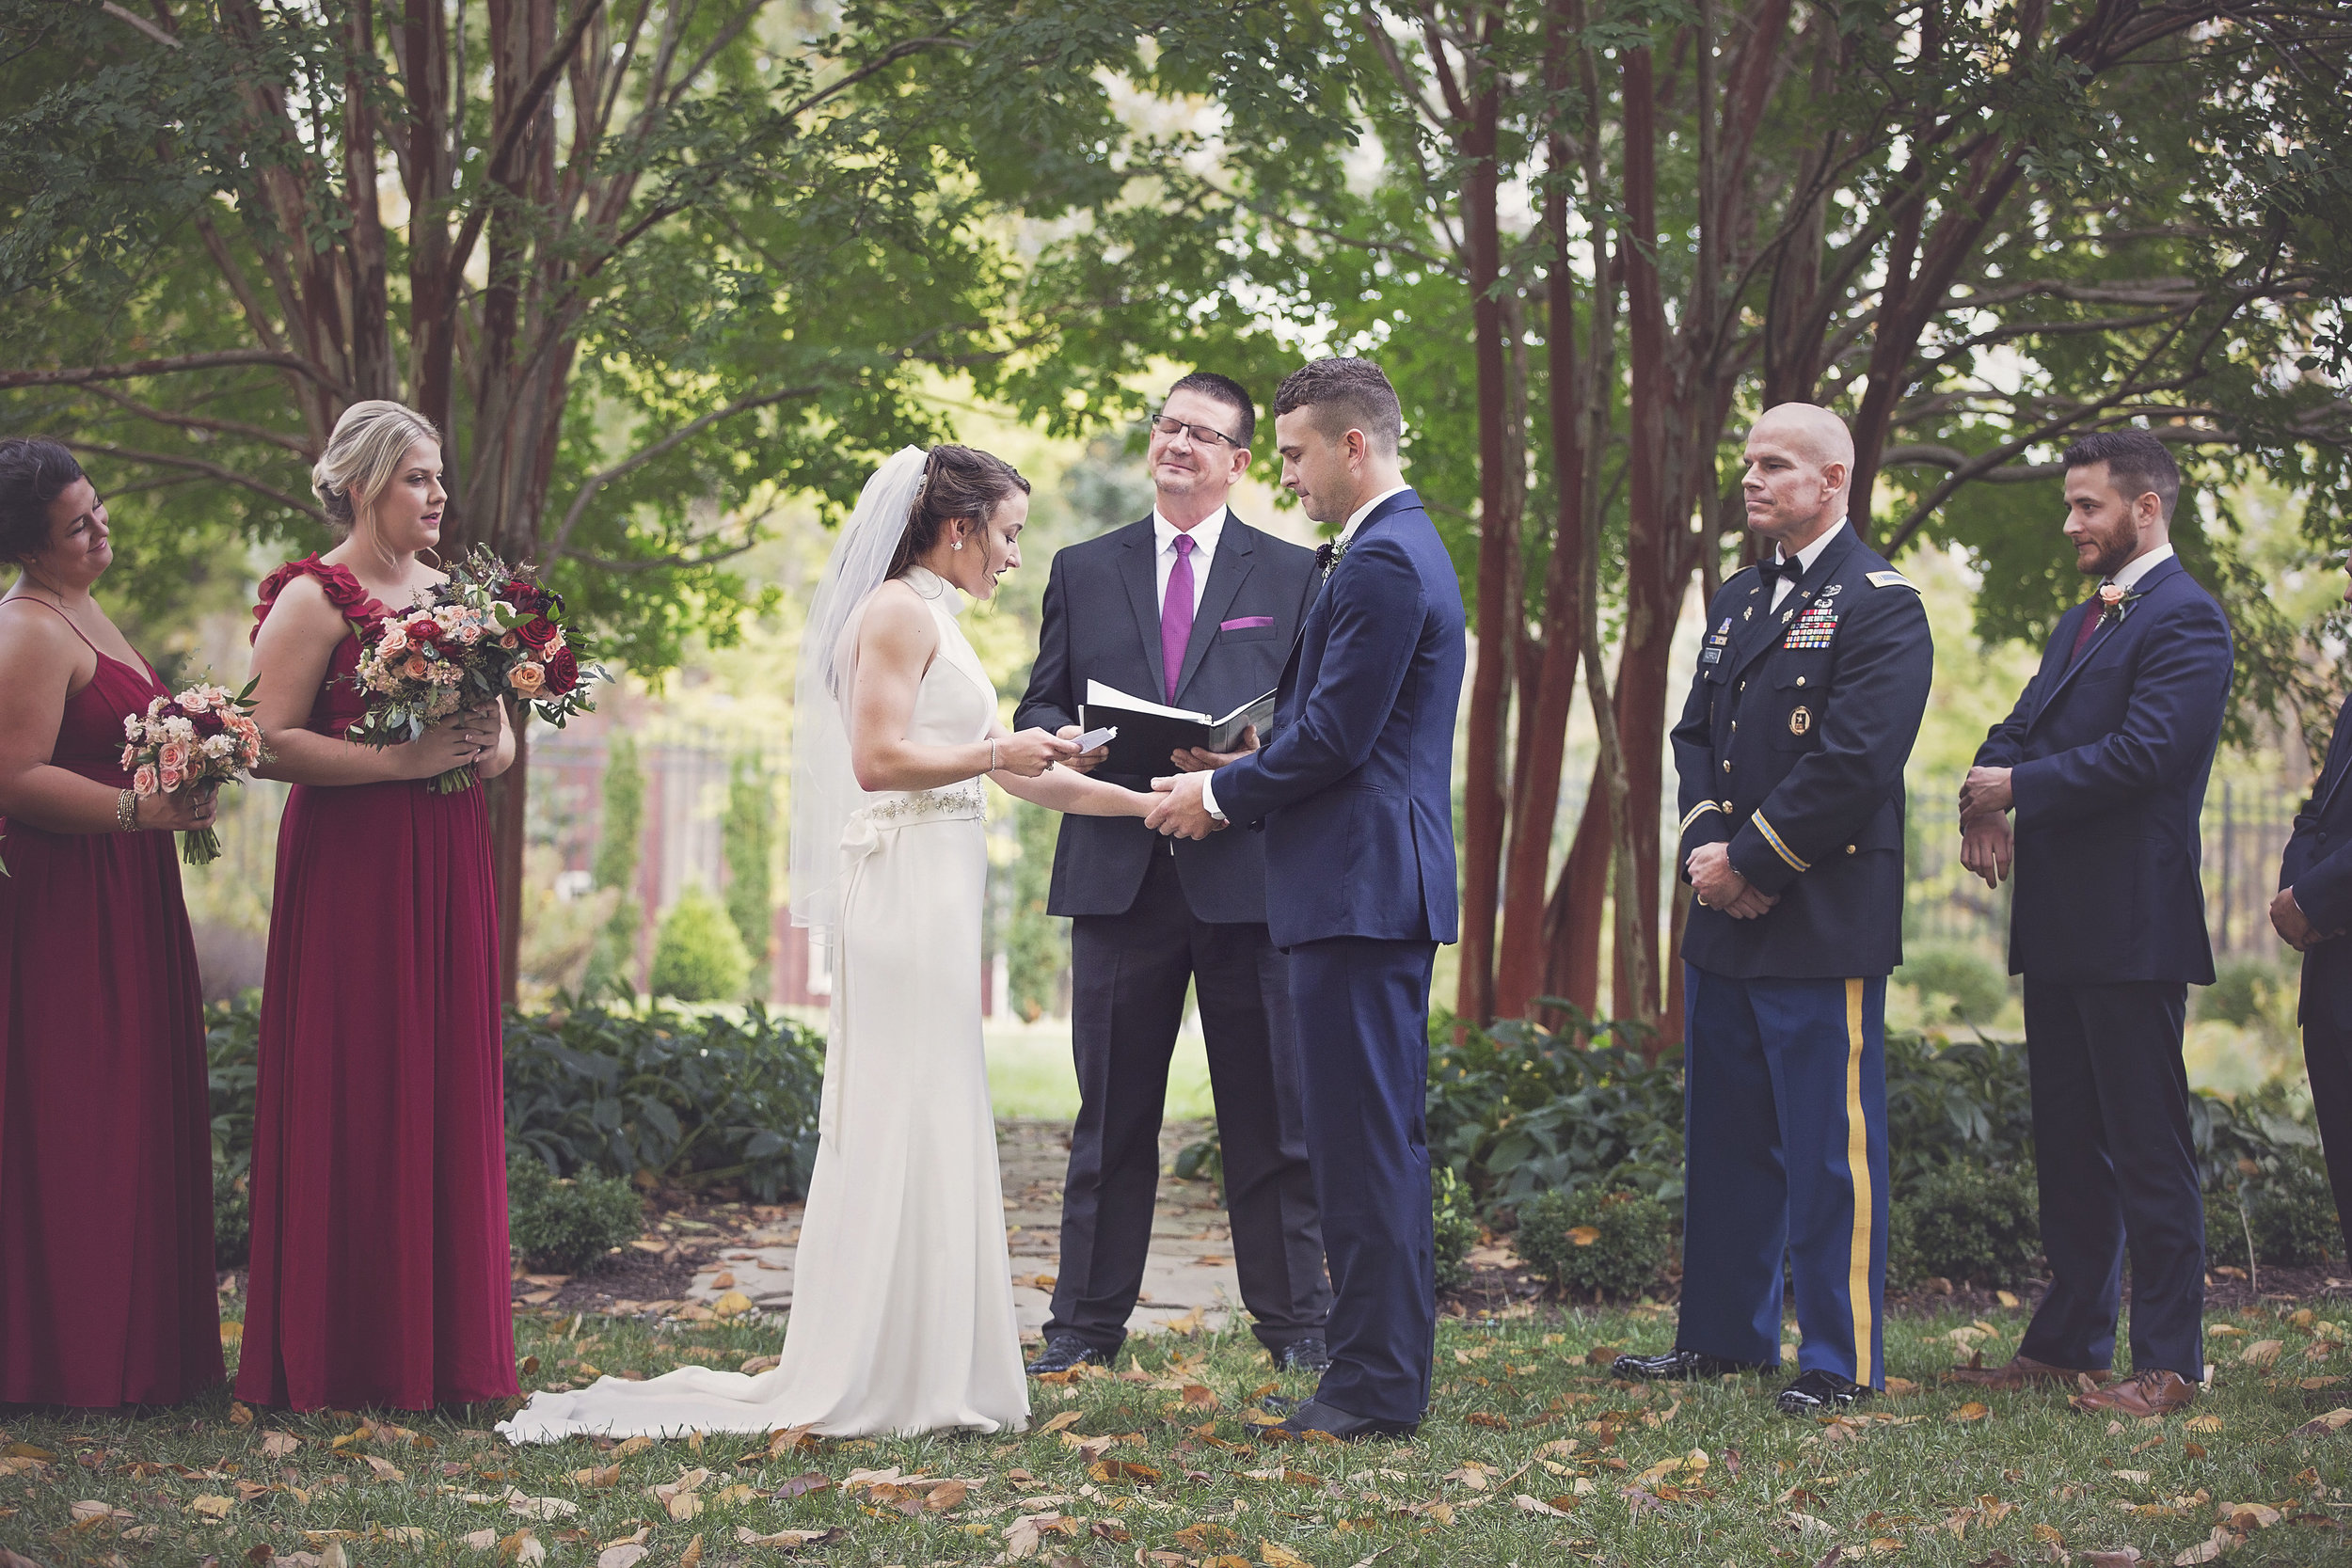 belmont_manor_maryland_wedding_coordinator_ceremony_under_trees